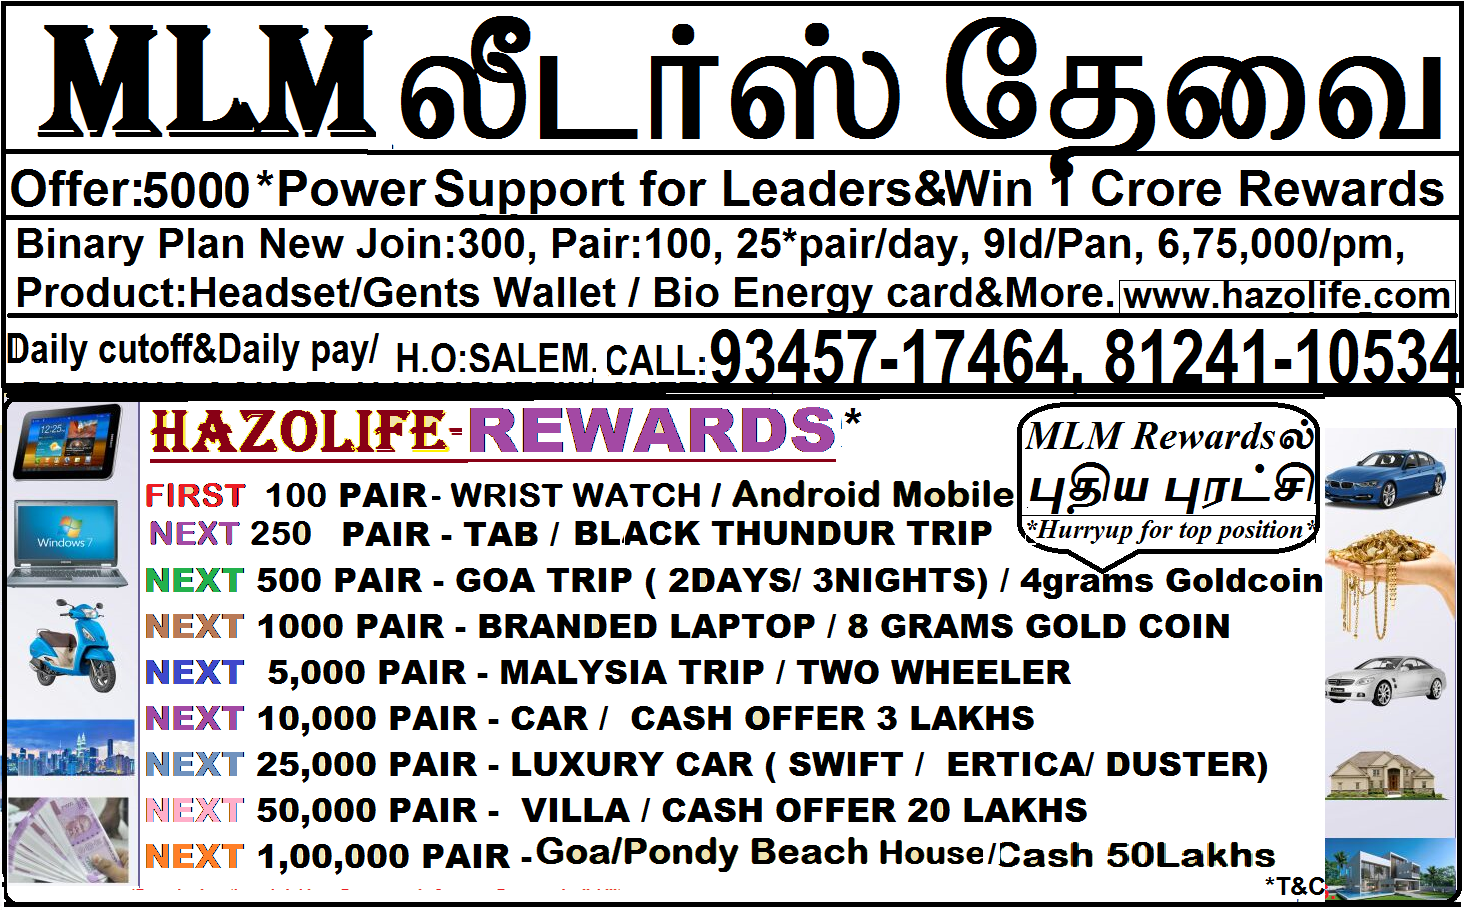 NEW JOIN 300, PAIR 100, 1000POWERS AND WIN 1 CRORE REWARDS